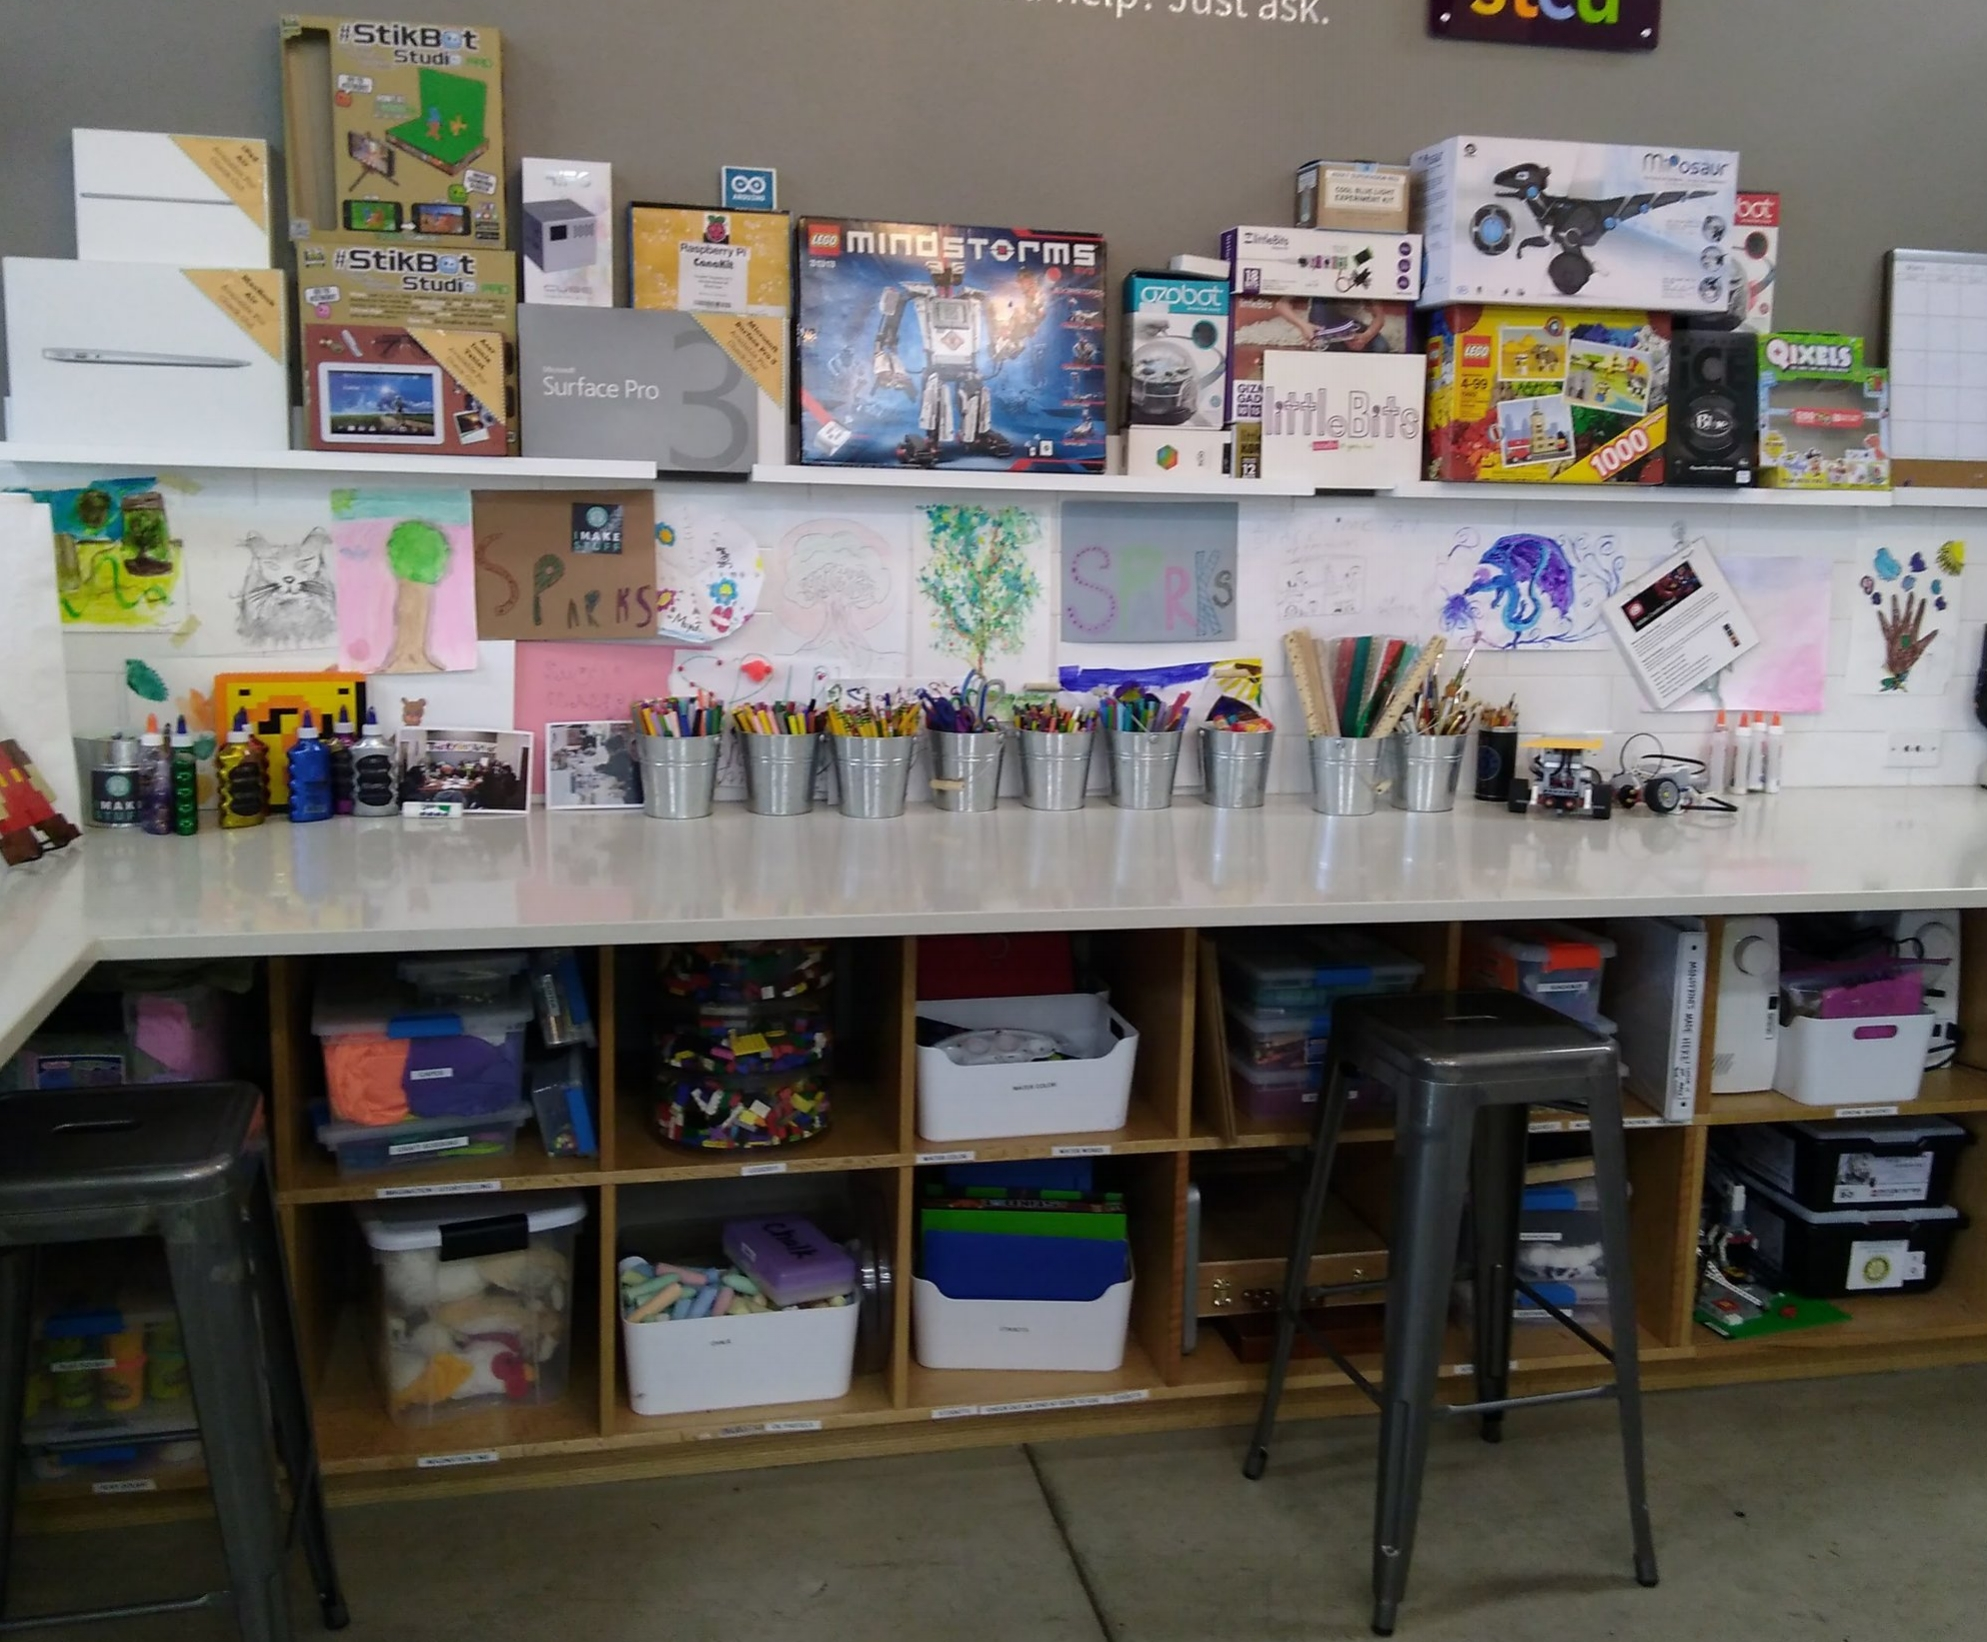 Maker Space - Materials to be found within this space include: art and craft supplies (paper, scissors, fabric, string, tape, glue, markers, pencil crayons, stamps/ink), paper cutter, stapler, paper clips, computer components, chalk, playdough, Lego pieces and various related odds and ends.The Tech Kits displayed in this area are actually stored within the cupboards under the front counter of the Volunteer Station.